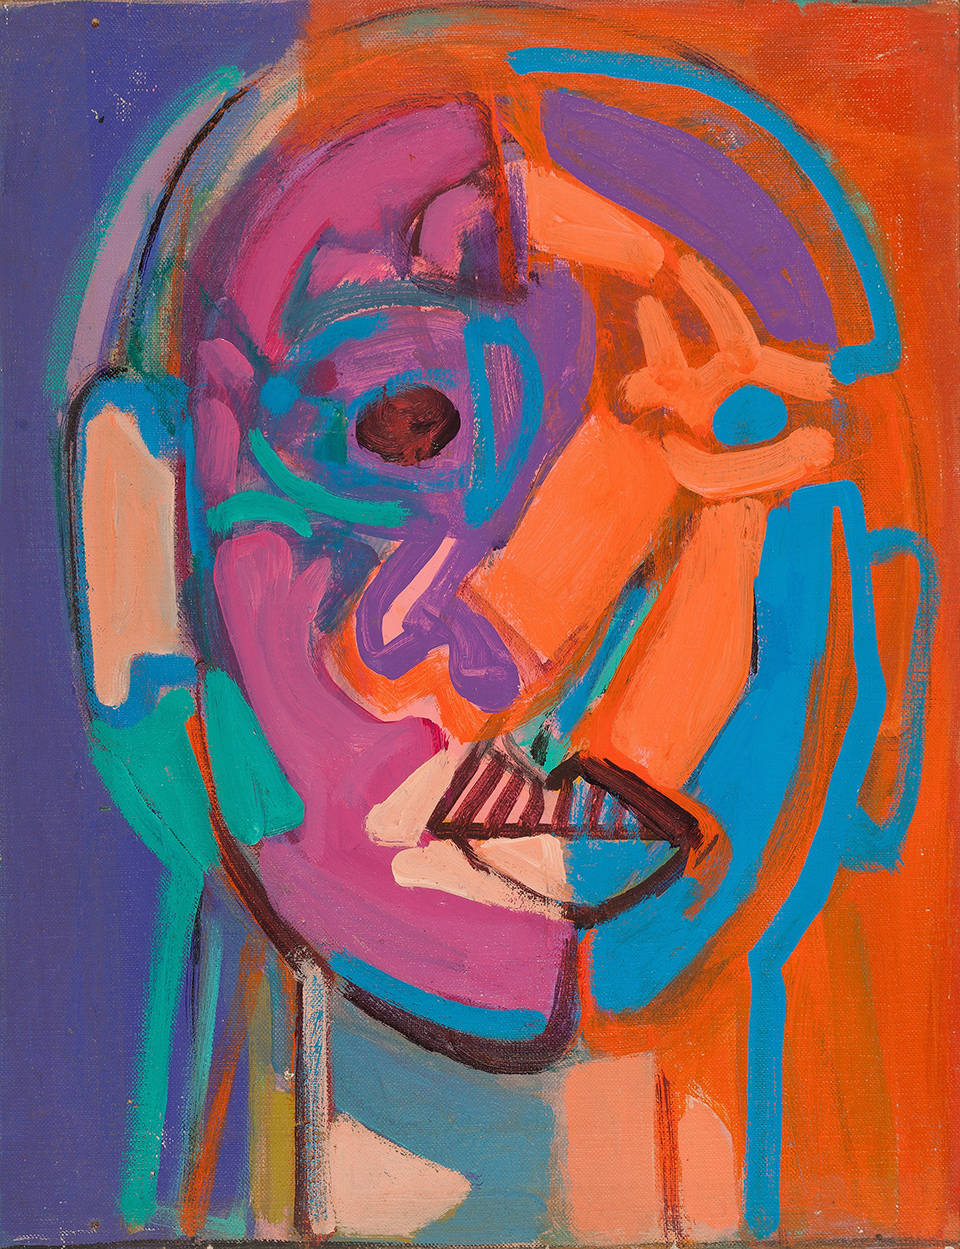 Susan Tepper, Untitled (From the Heads Series), c. 1978-1983. Acrylic on masonite 15.5 x 12 inches (39.4 x 30.5 cm)